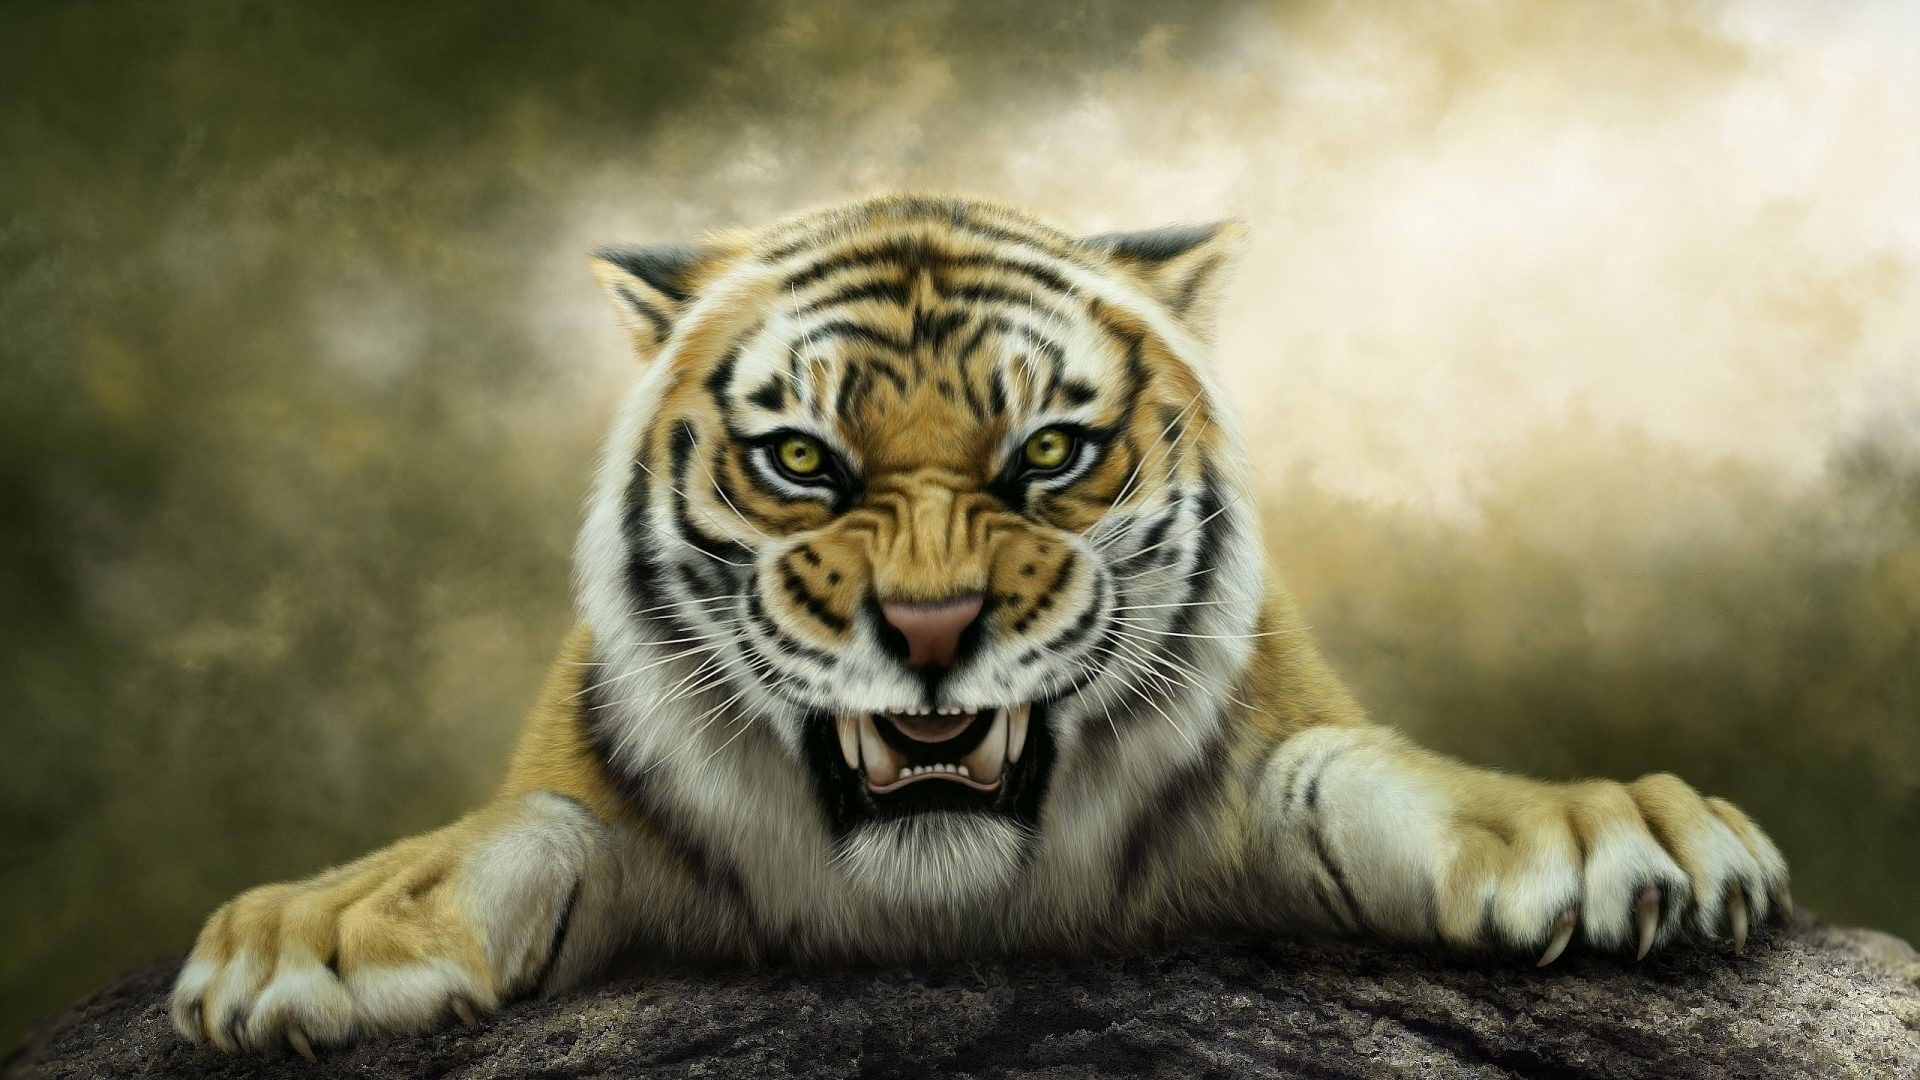 1920x1080 Cats - Fantasy Animals Tigers Art Roar Painting Images Of Grey Cats for HD  16: